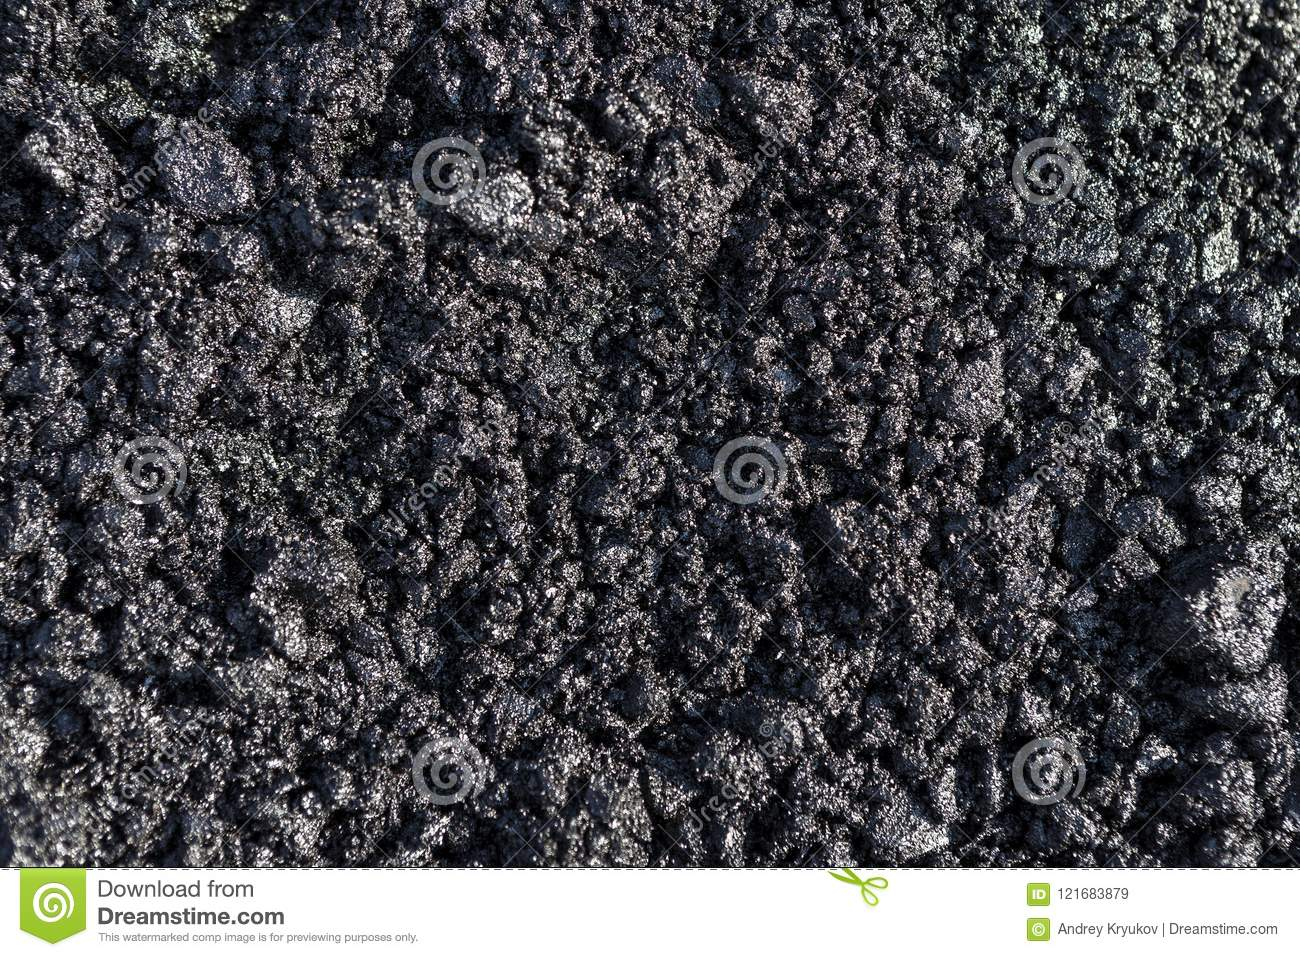 What color is the asphalt: black or gray - why